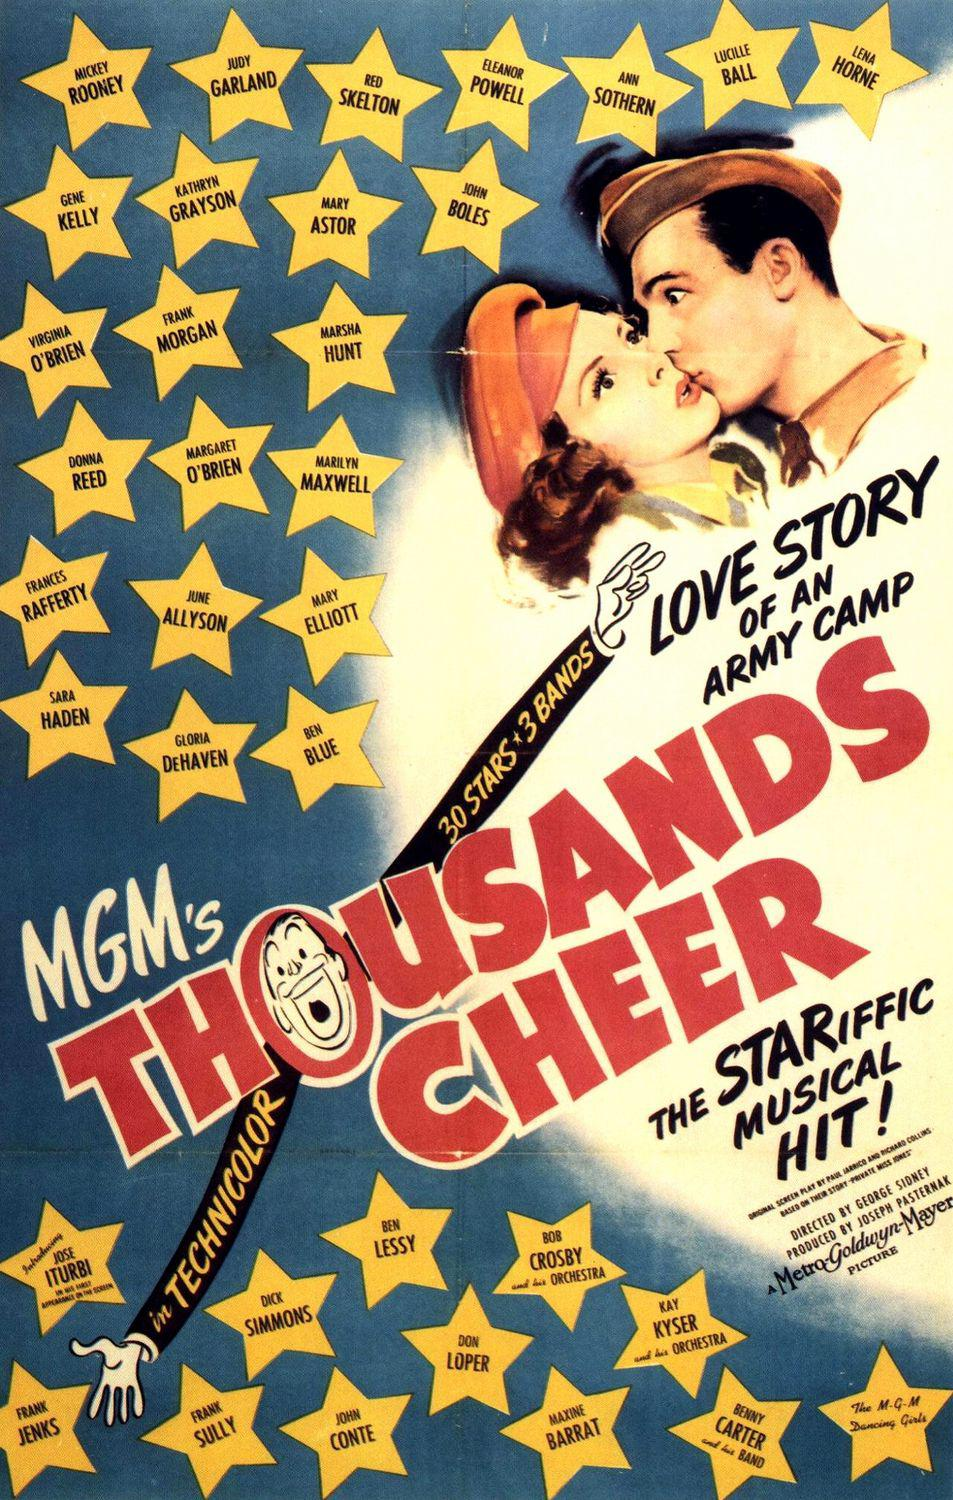 Thousands Cheer - old poster - the Stariffic Musical hit